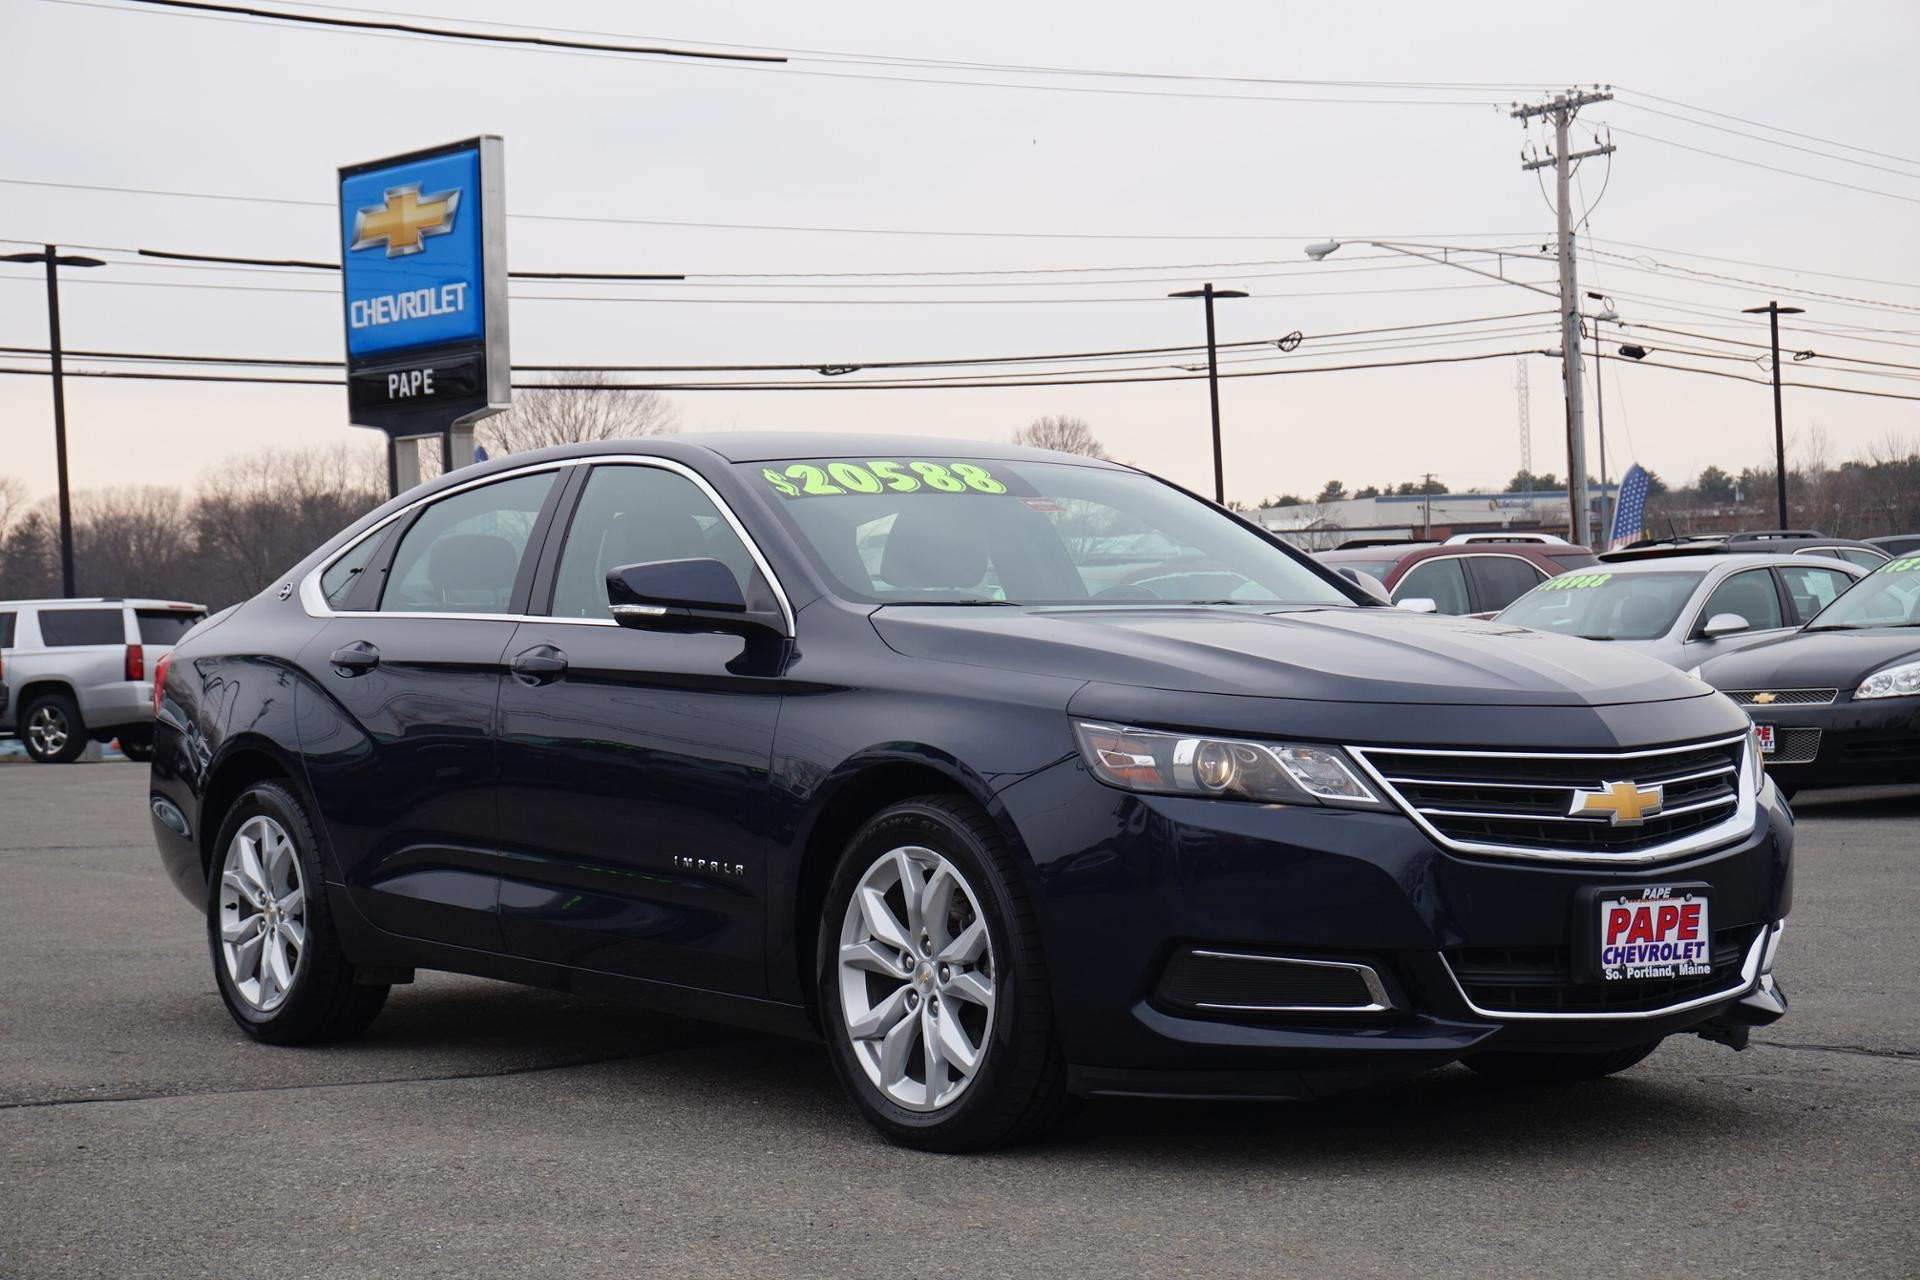 Impala Cars for Sale Near Me New Used Cars for Sale Near Me Chevy Awesome Used Chevrolet Impala for